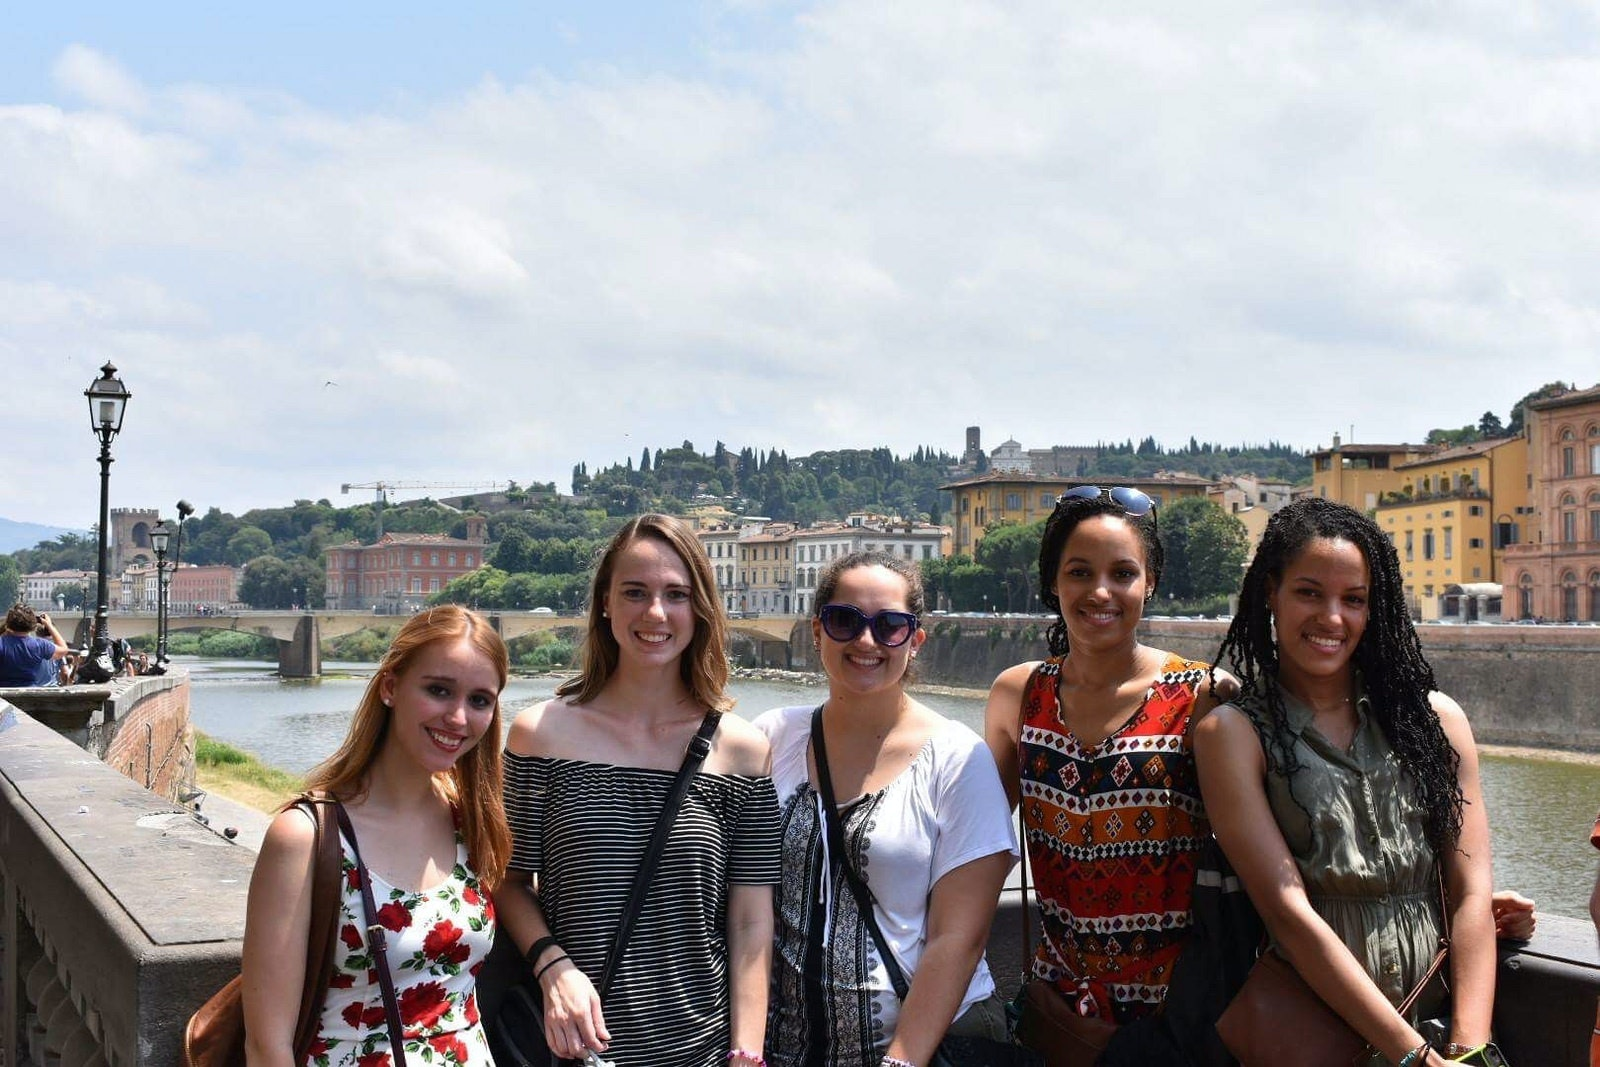 7 tips to stay safe while studying abroad